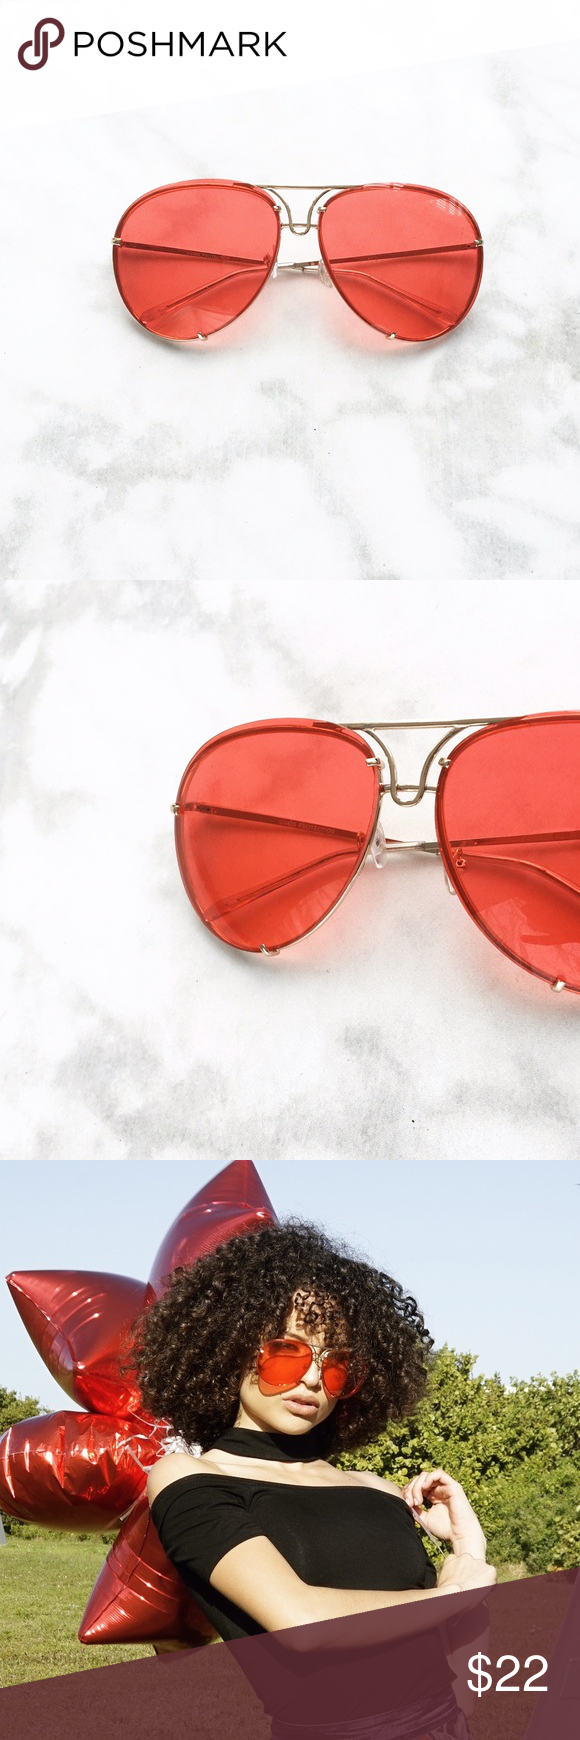 9ec985194 ✨1 DAY SALE✨RED OVERSIZED AVIATOR SUNGLASSES These sleek and simple oversized  aviator sunglasses